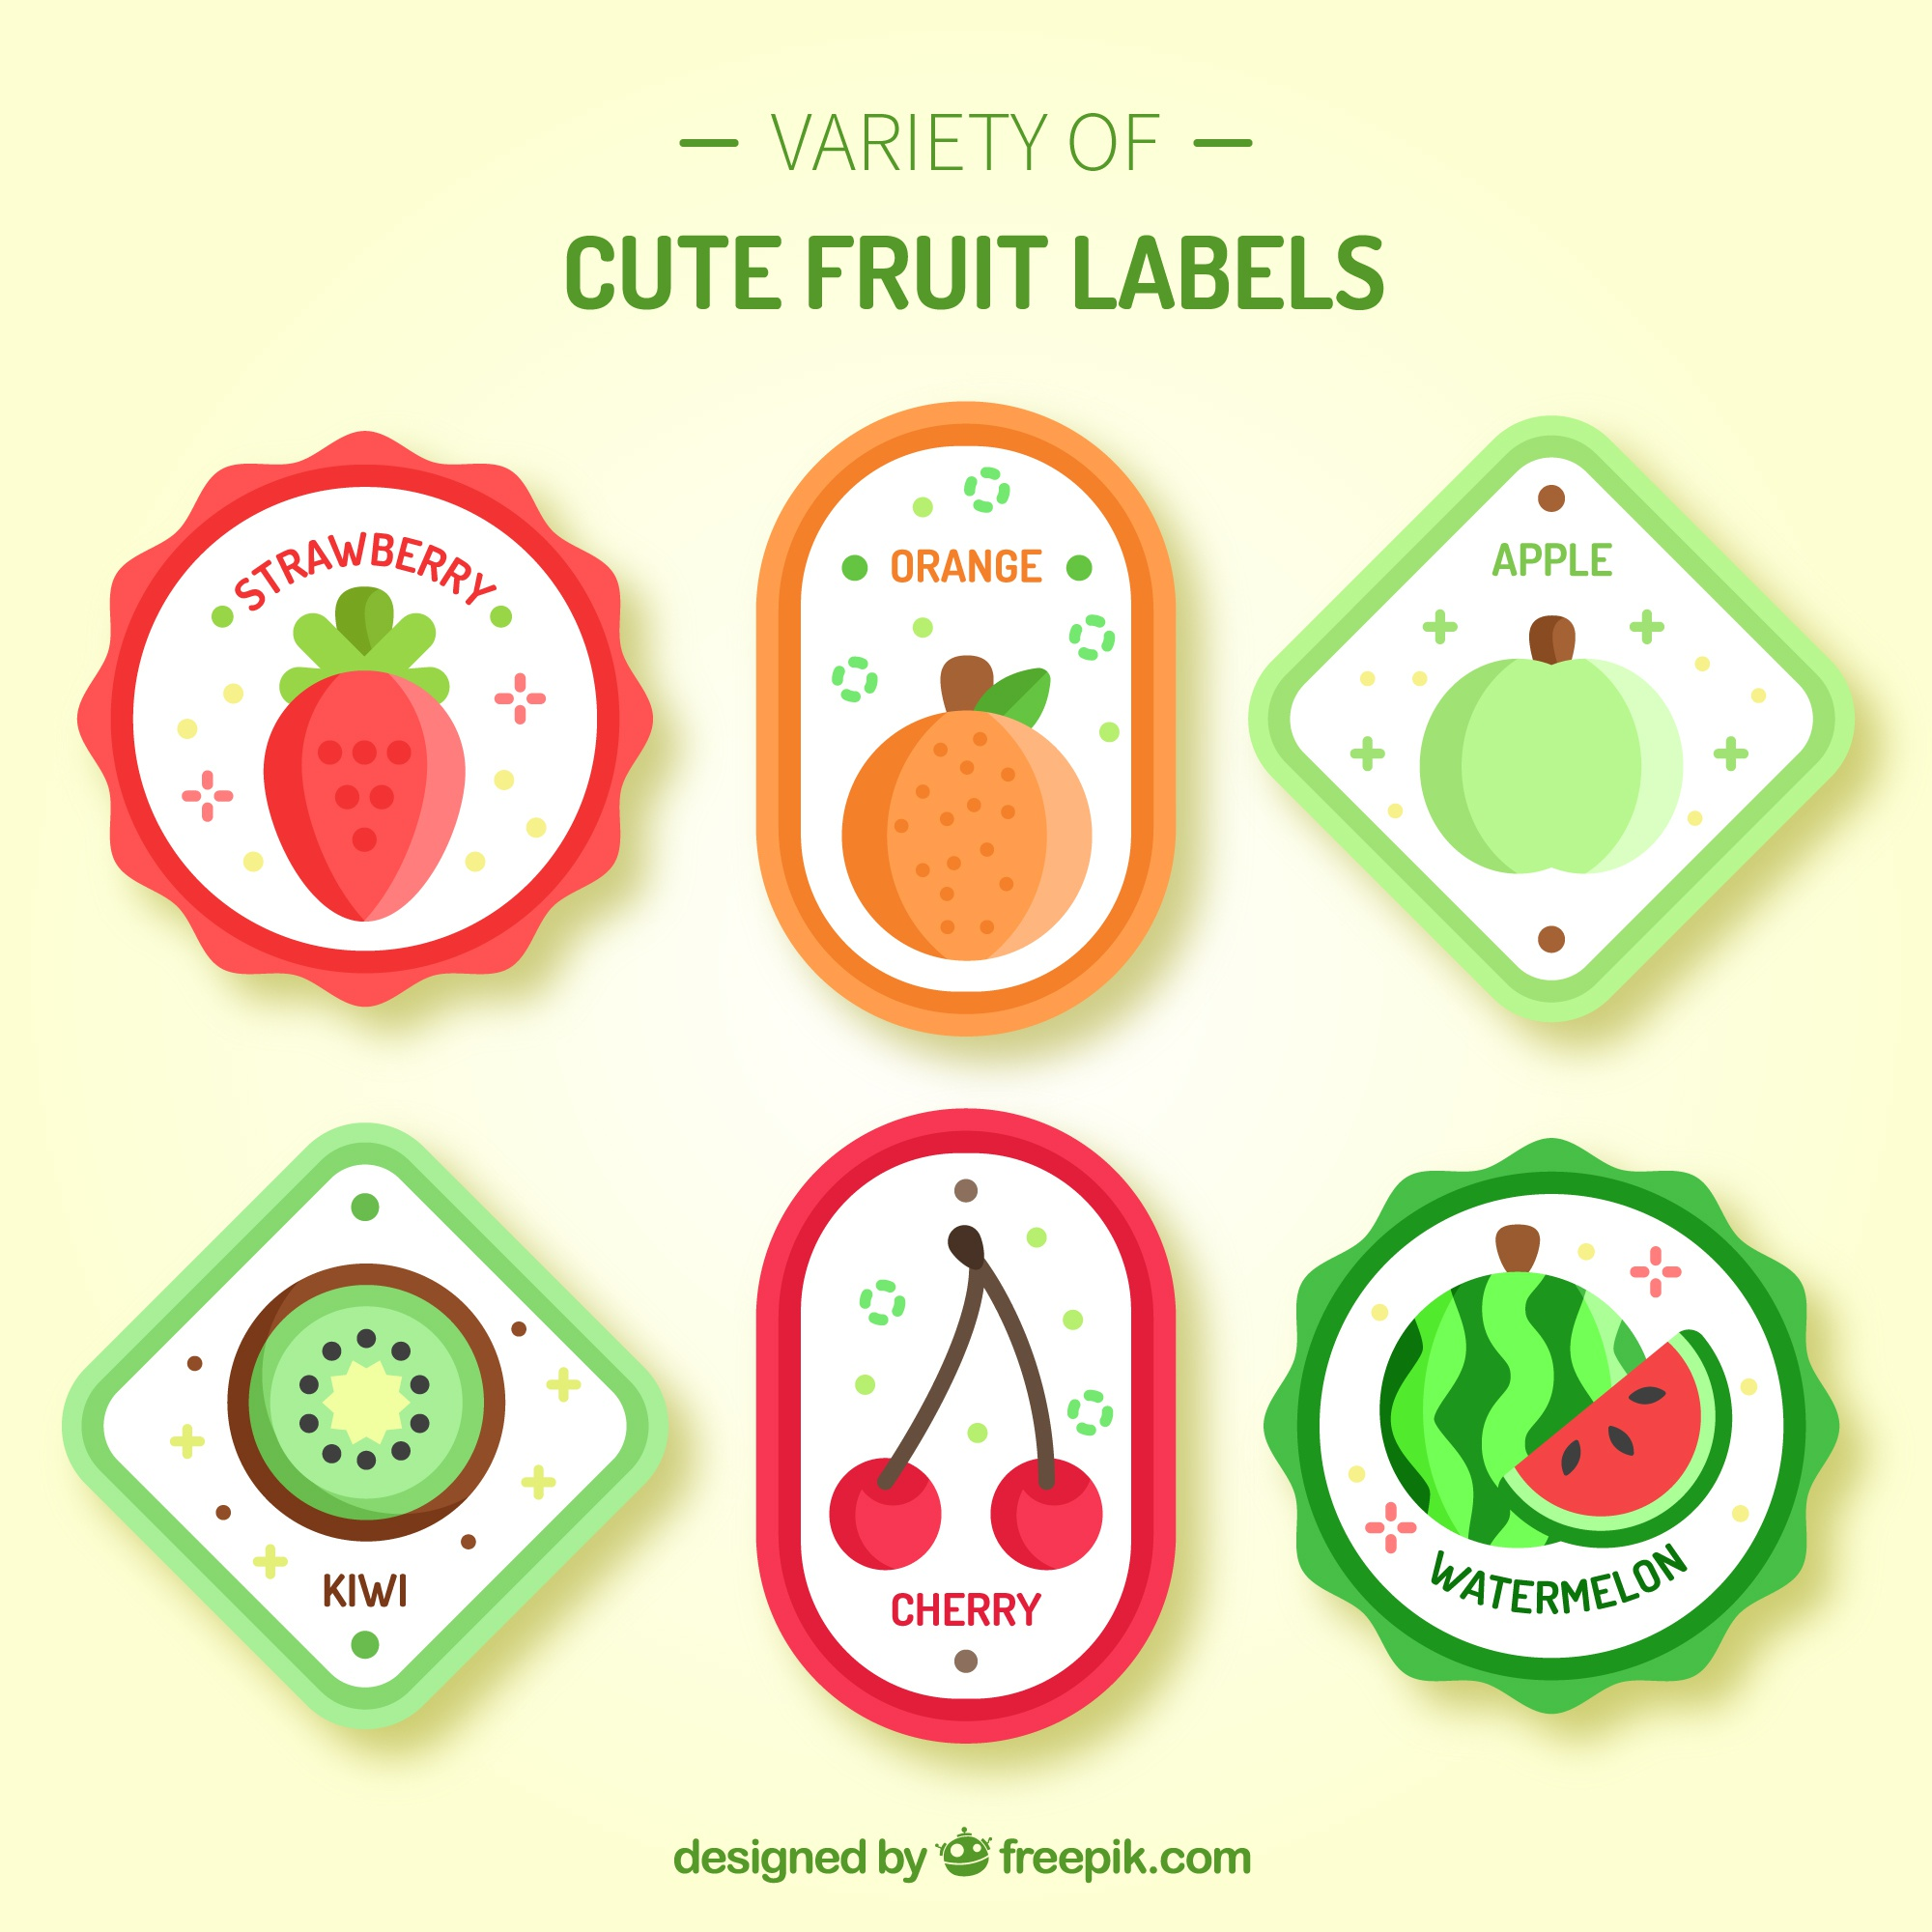 Variety of cute fruit labels